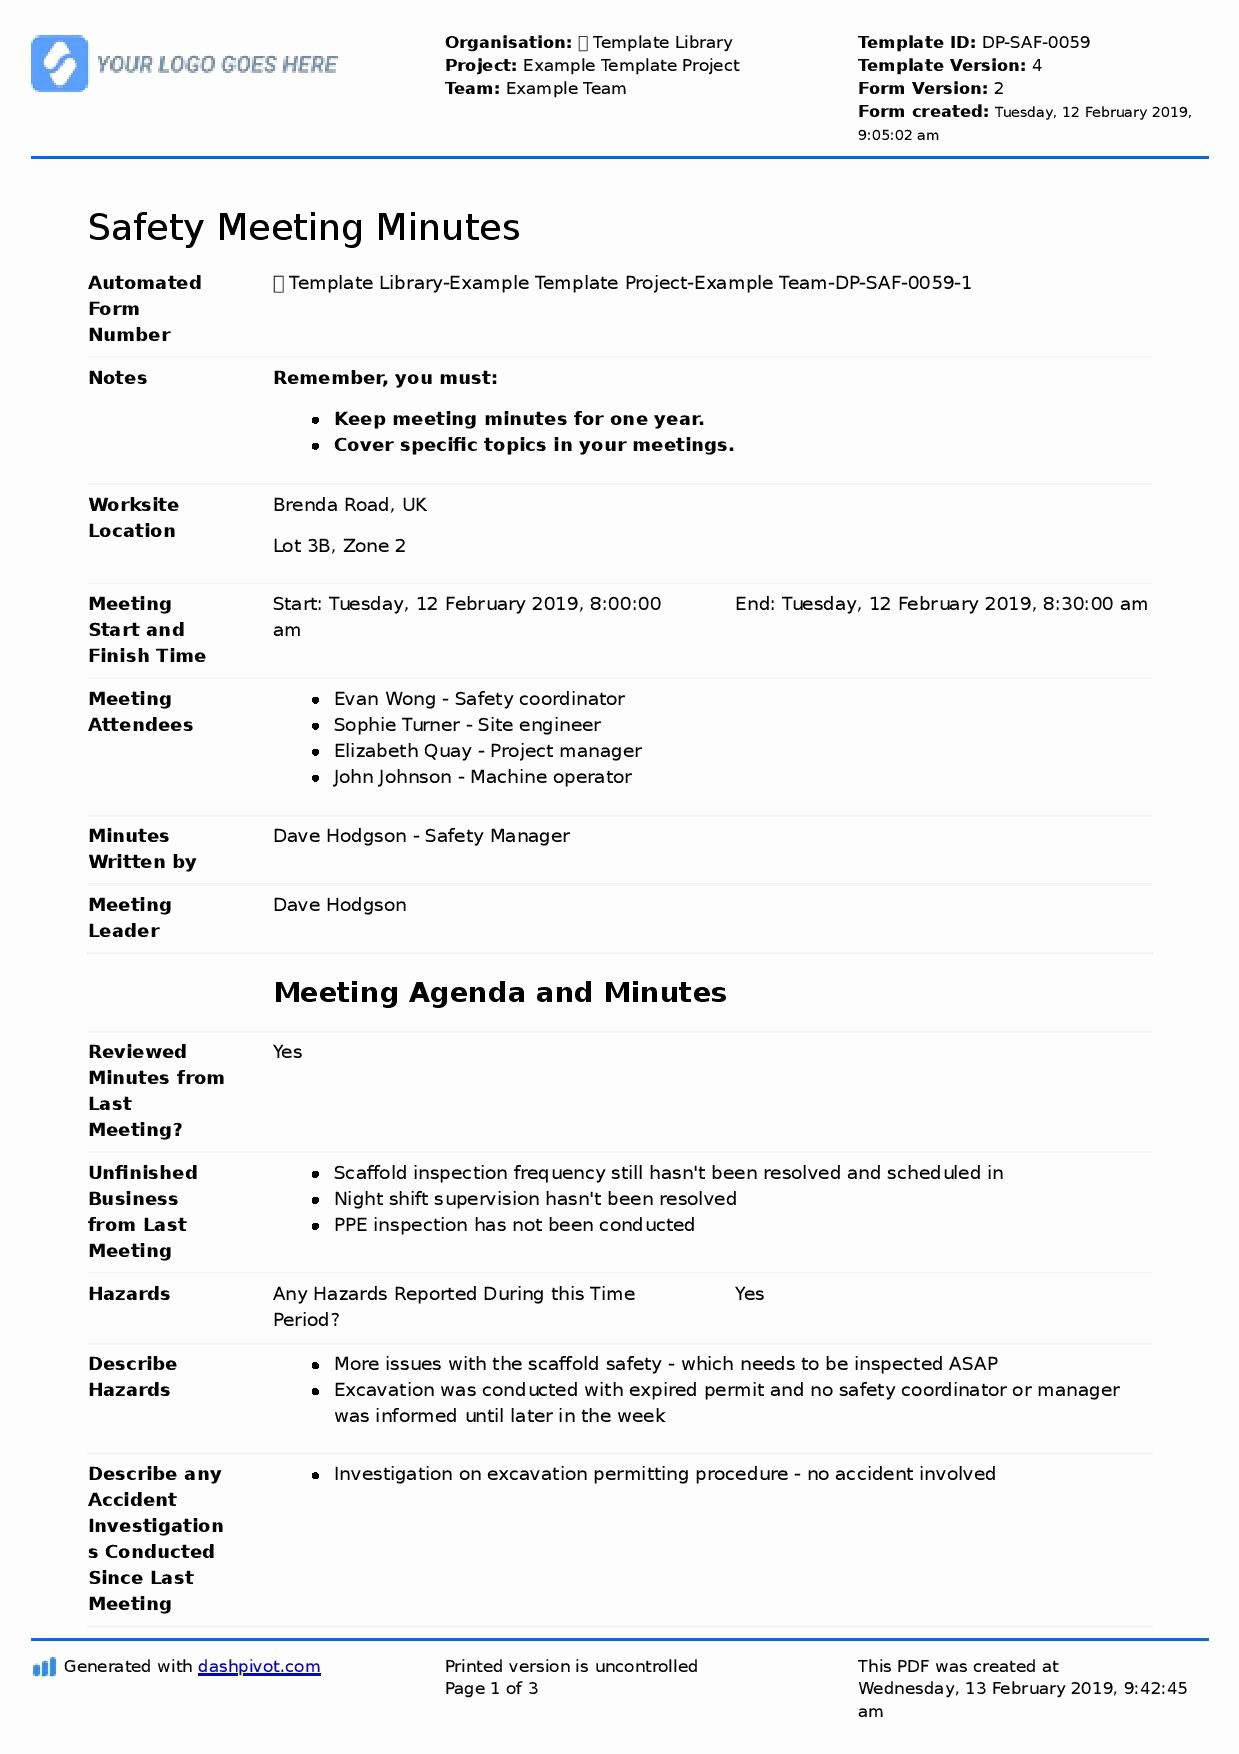 Safety Meeting Minutes Template Beautiful Safety Mittee Meeting Agenda and Minutes Template Use